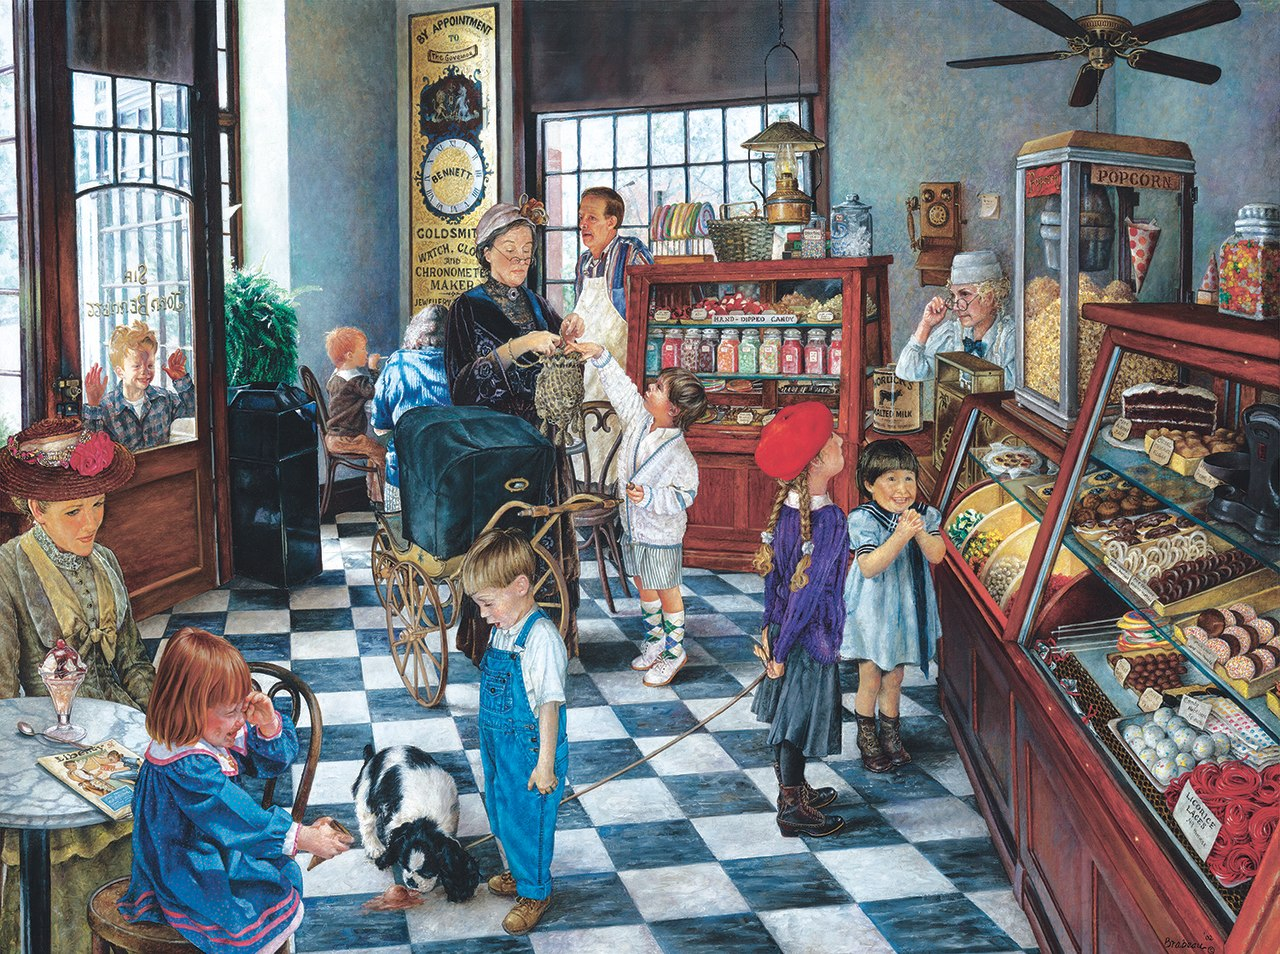 Confectionary Shop - 1000pc Jigsaw Puzzle by Sunsout  			  					NEW